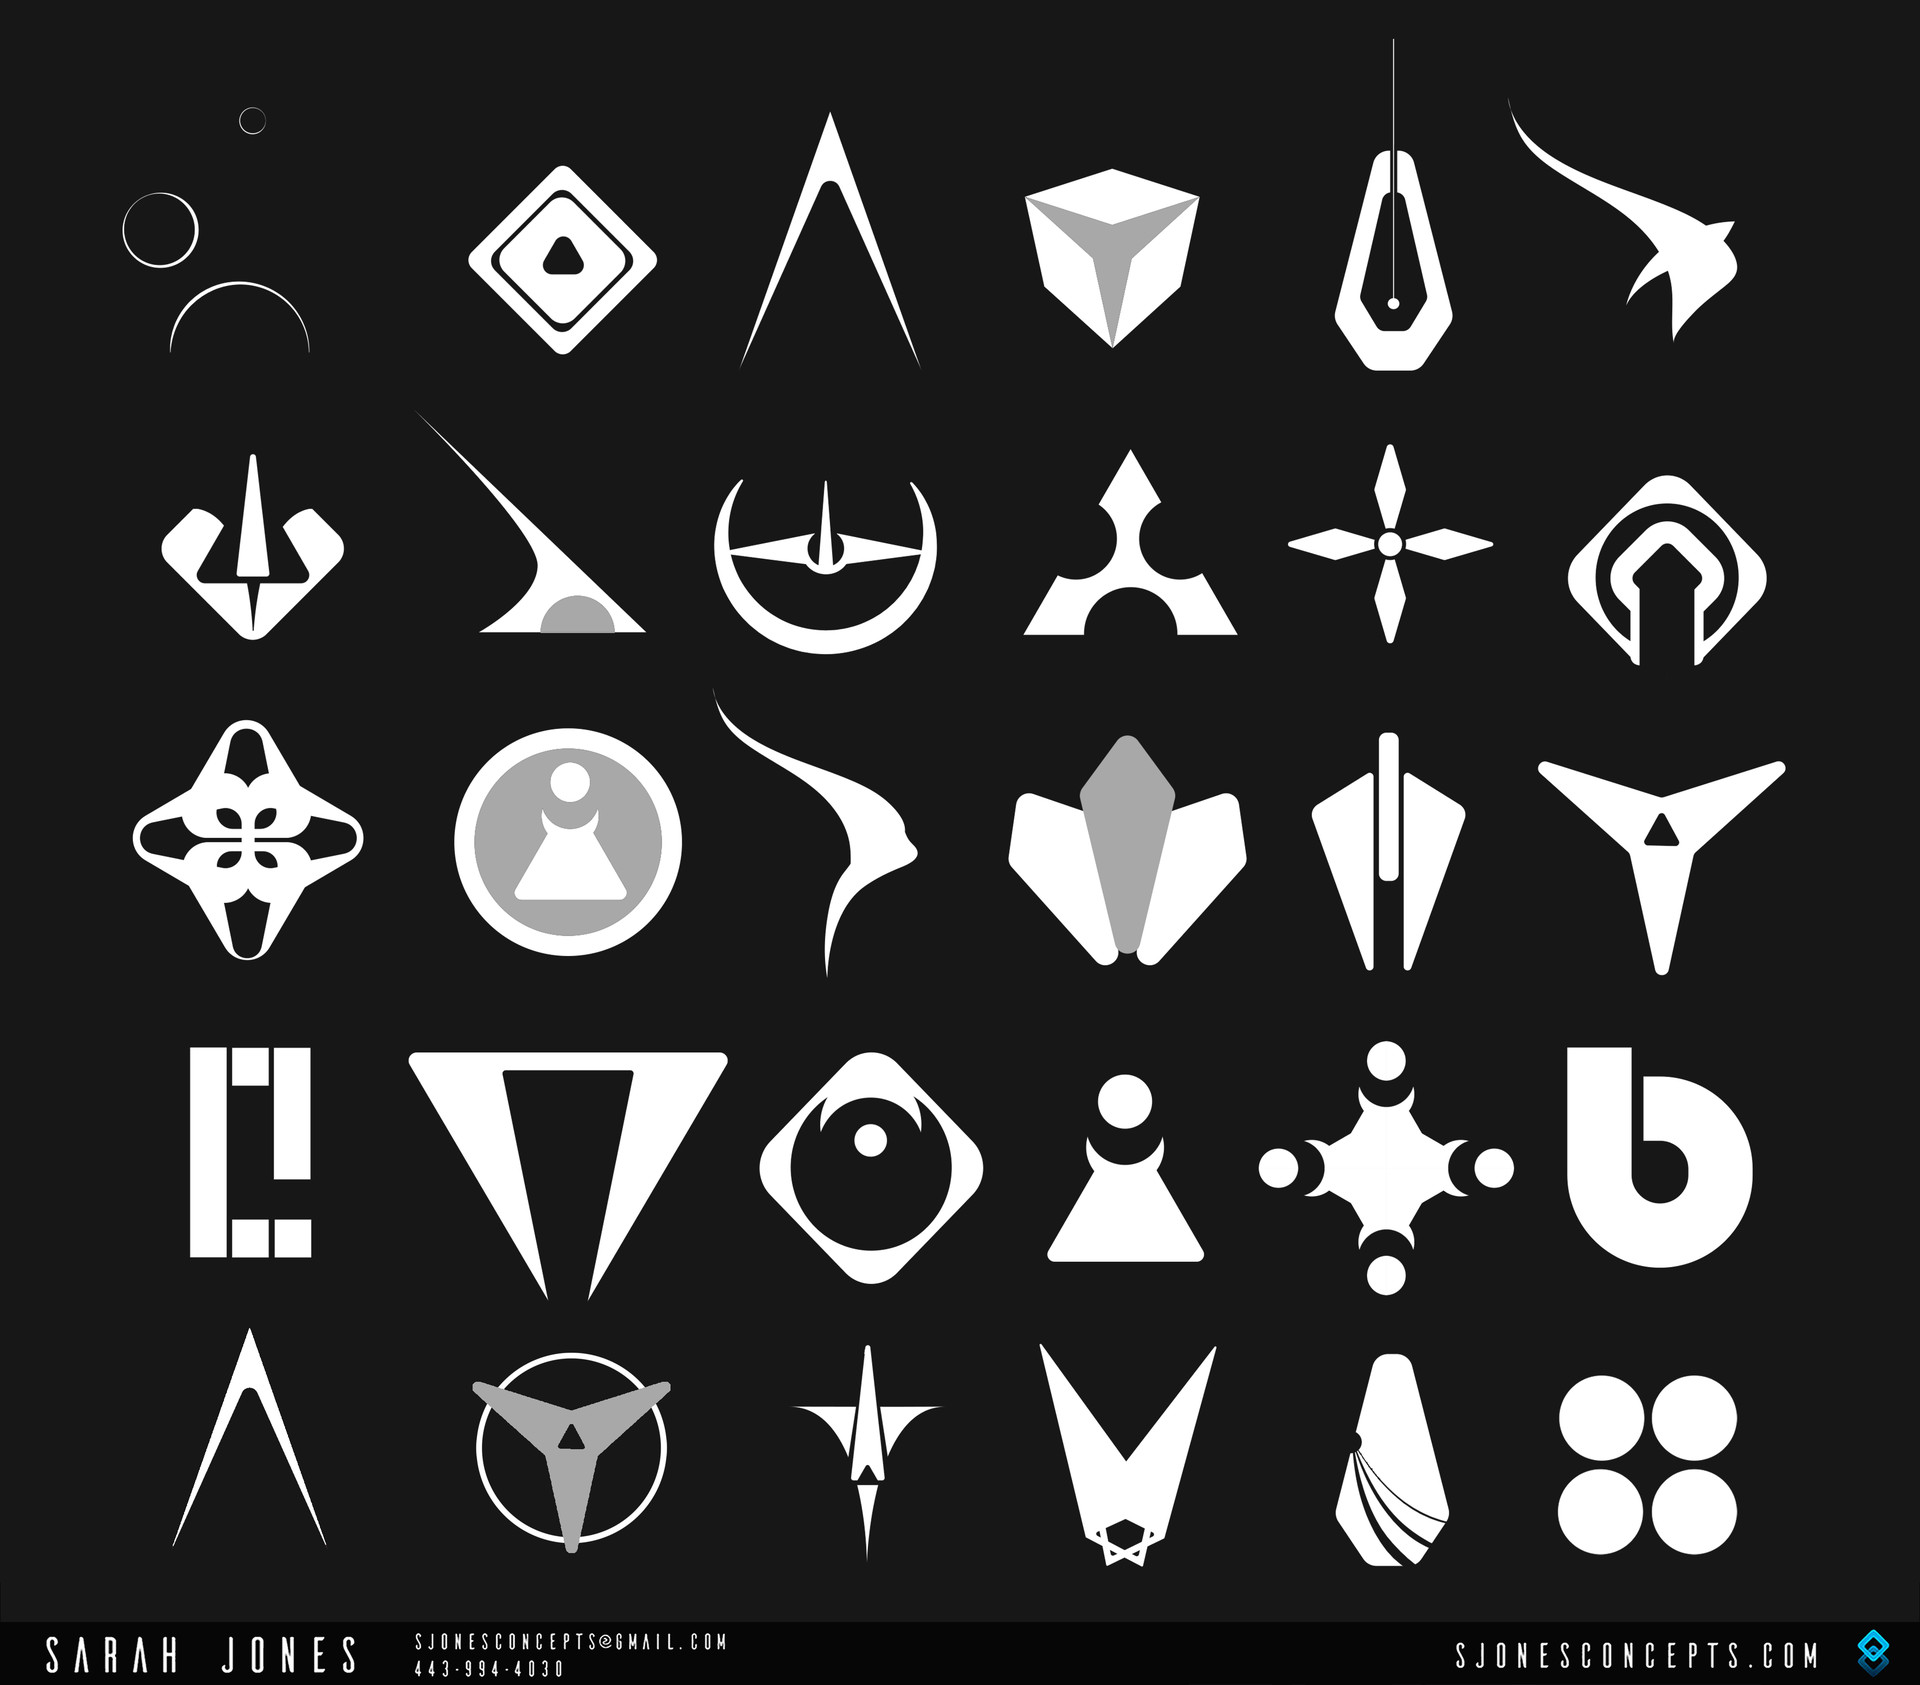 Sarah jones ui icons b